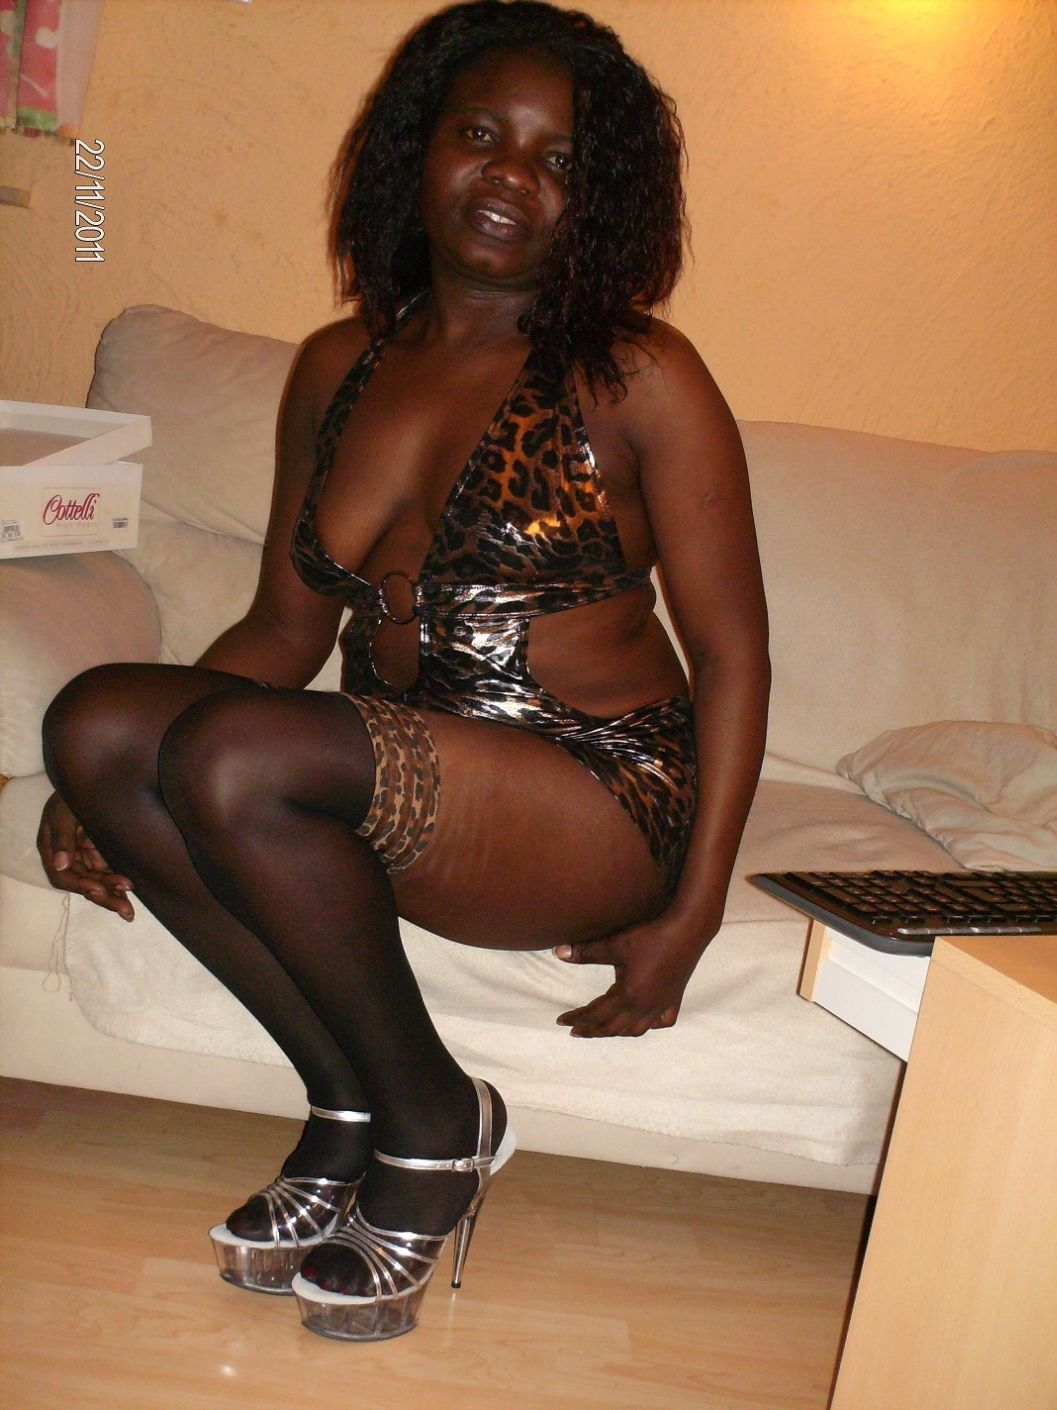 Blackbeautiy, Frankfurt am Main